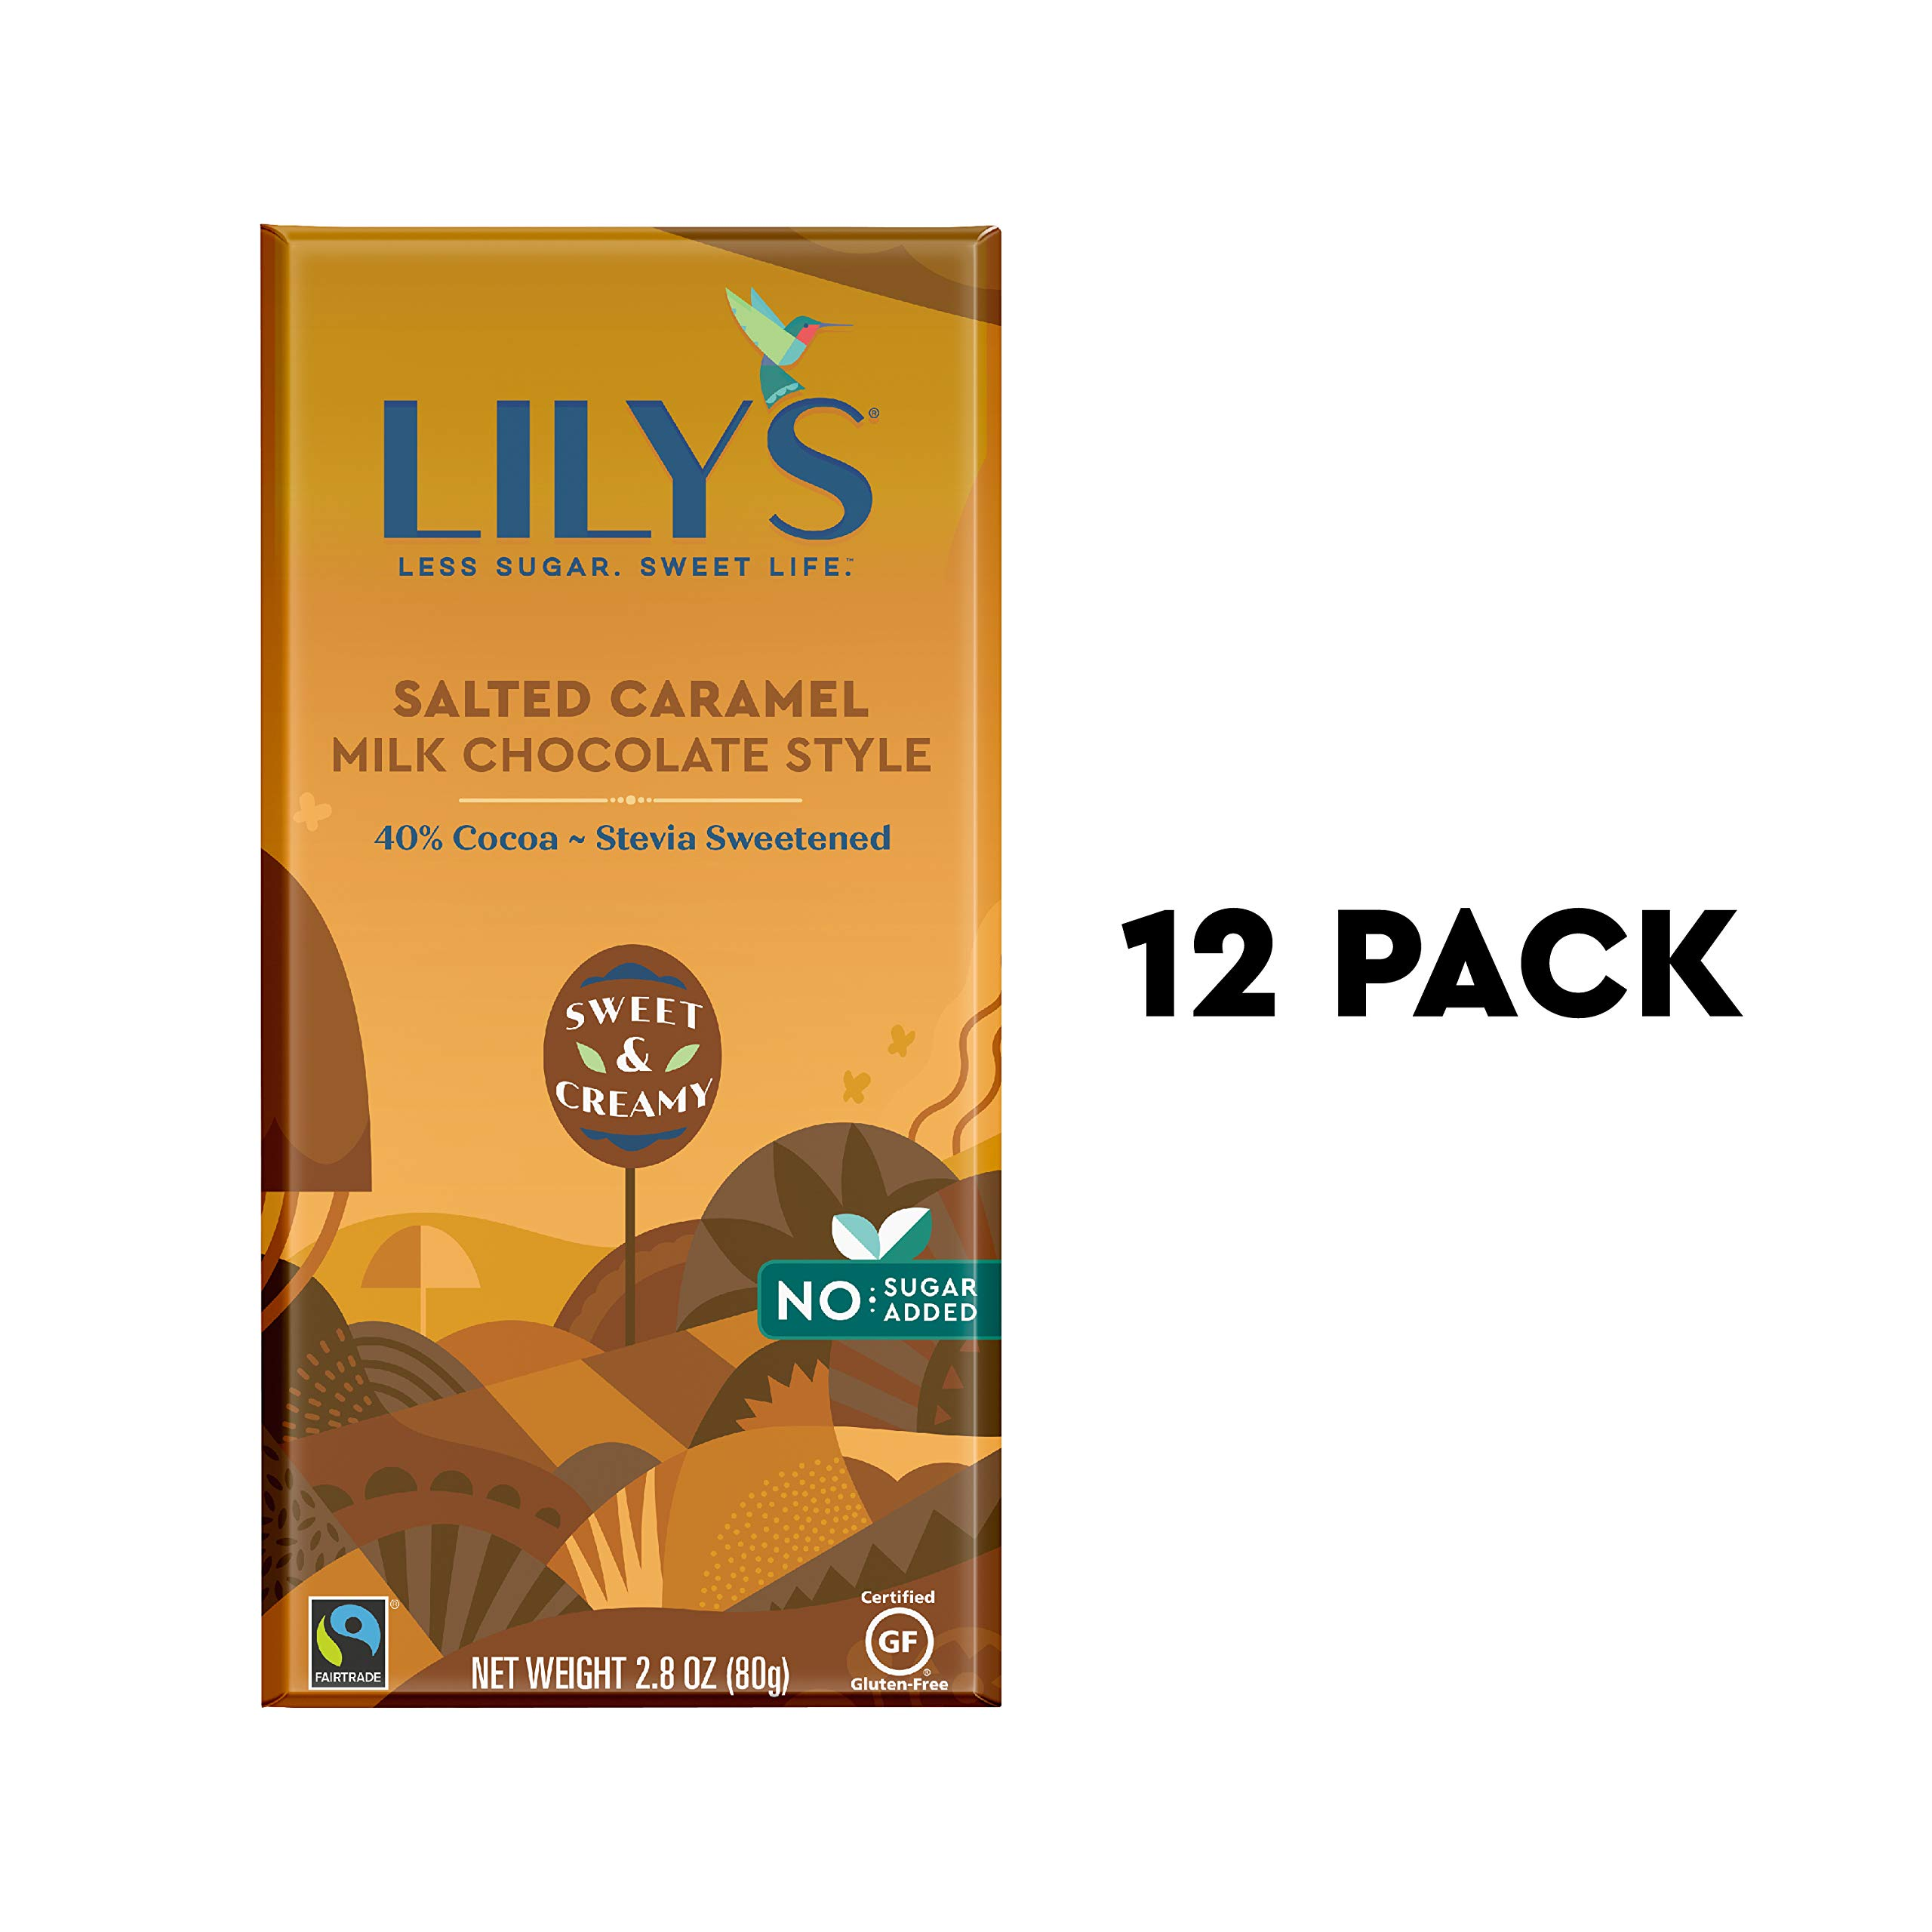 Caramelized & Salted Milk Chocolate Bar by Lily's Sweets | Stevia Sweetened, No Added Sugar, Low-Carb, Keto Friendly | 40% Cacao | Fair Trade, Gluten-Free & Non-GMO | 2.8 ounce, 12-Pack by Lily`s Sweets